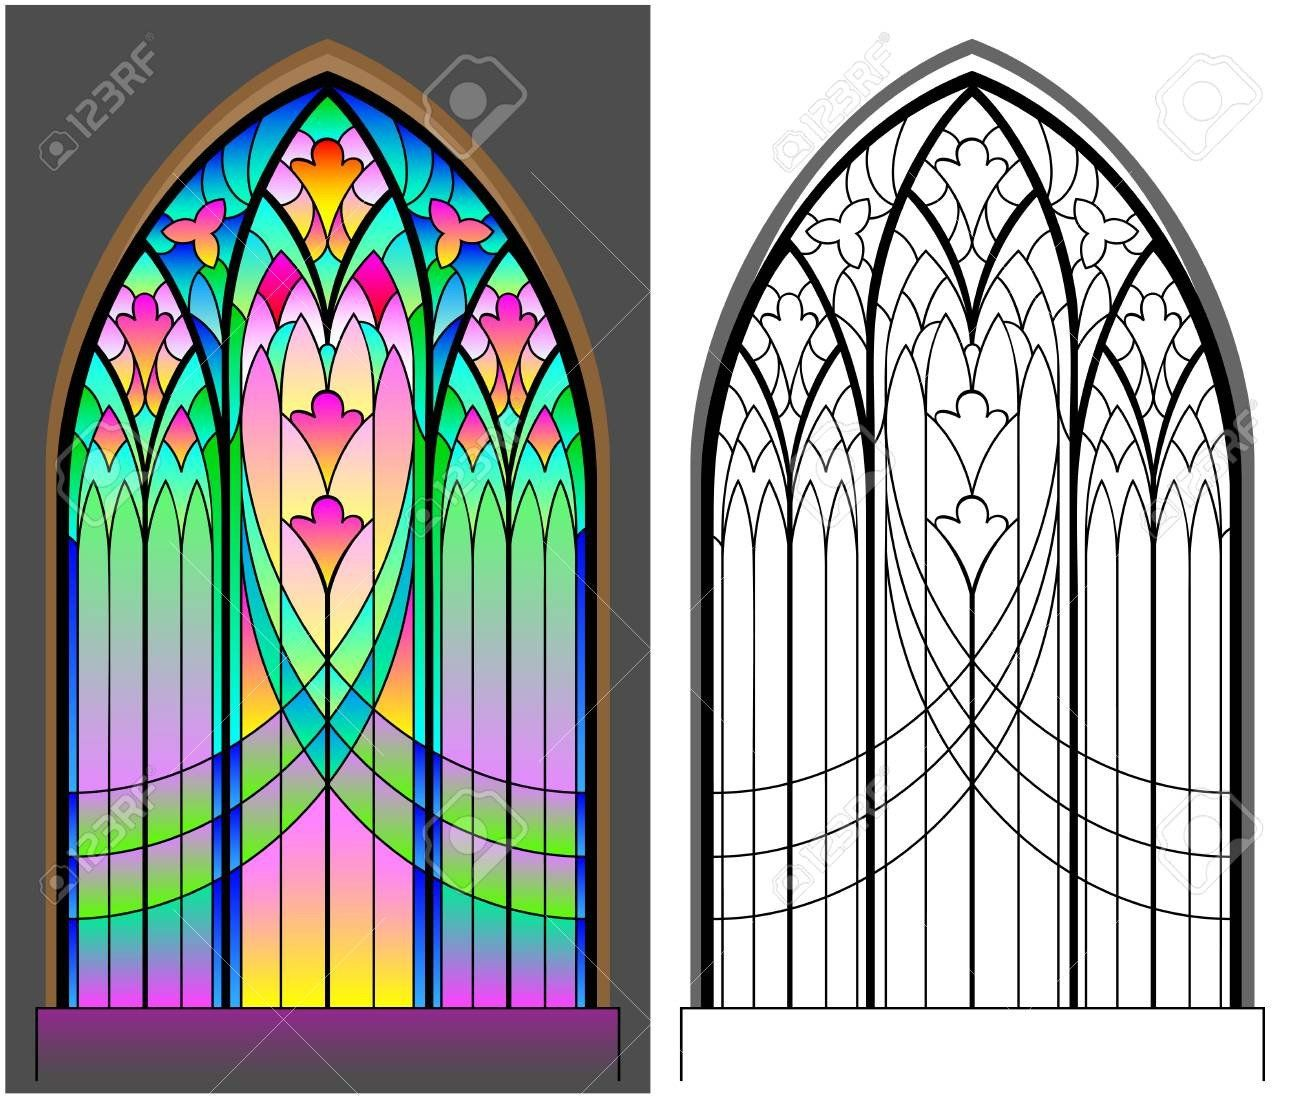 Stained Glass Windows Worksheet Colorful And Black And White Pattern Of Gothic Stained Glass Stained Glass Windows Stained Glass Gothic Cathedral